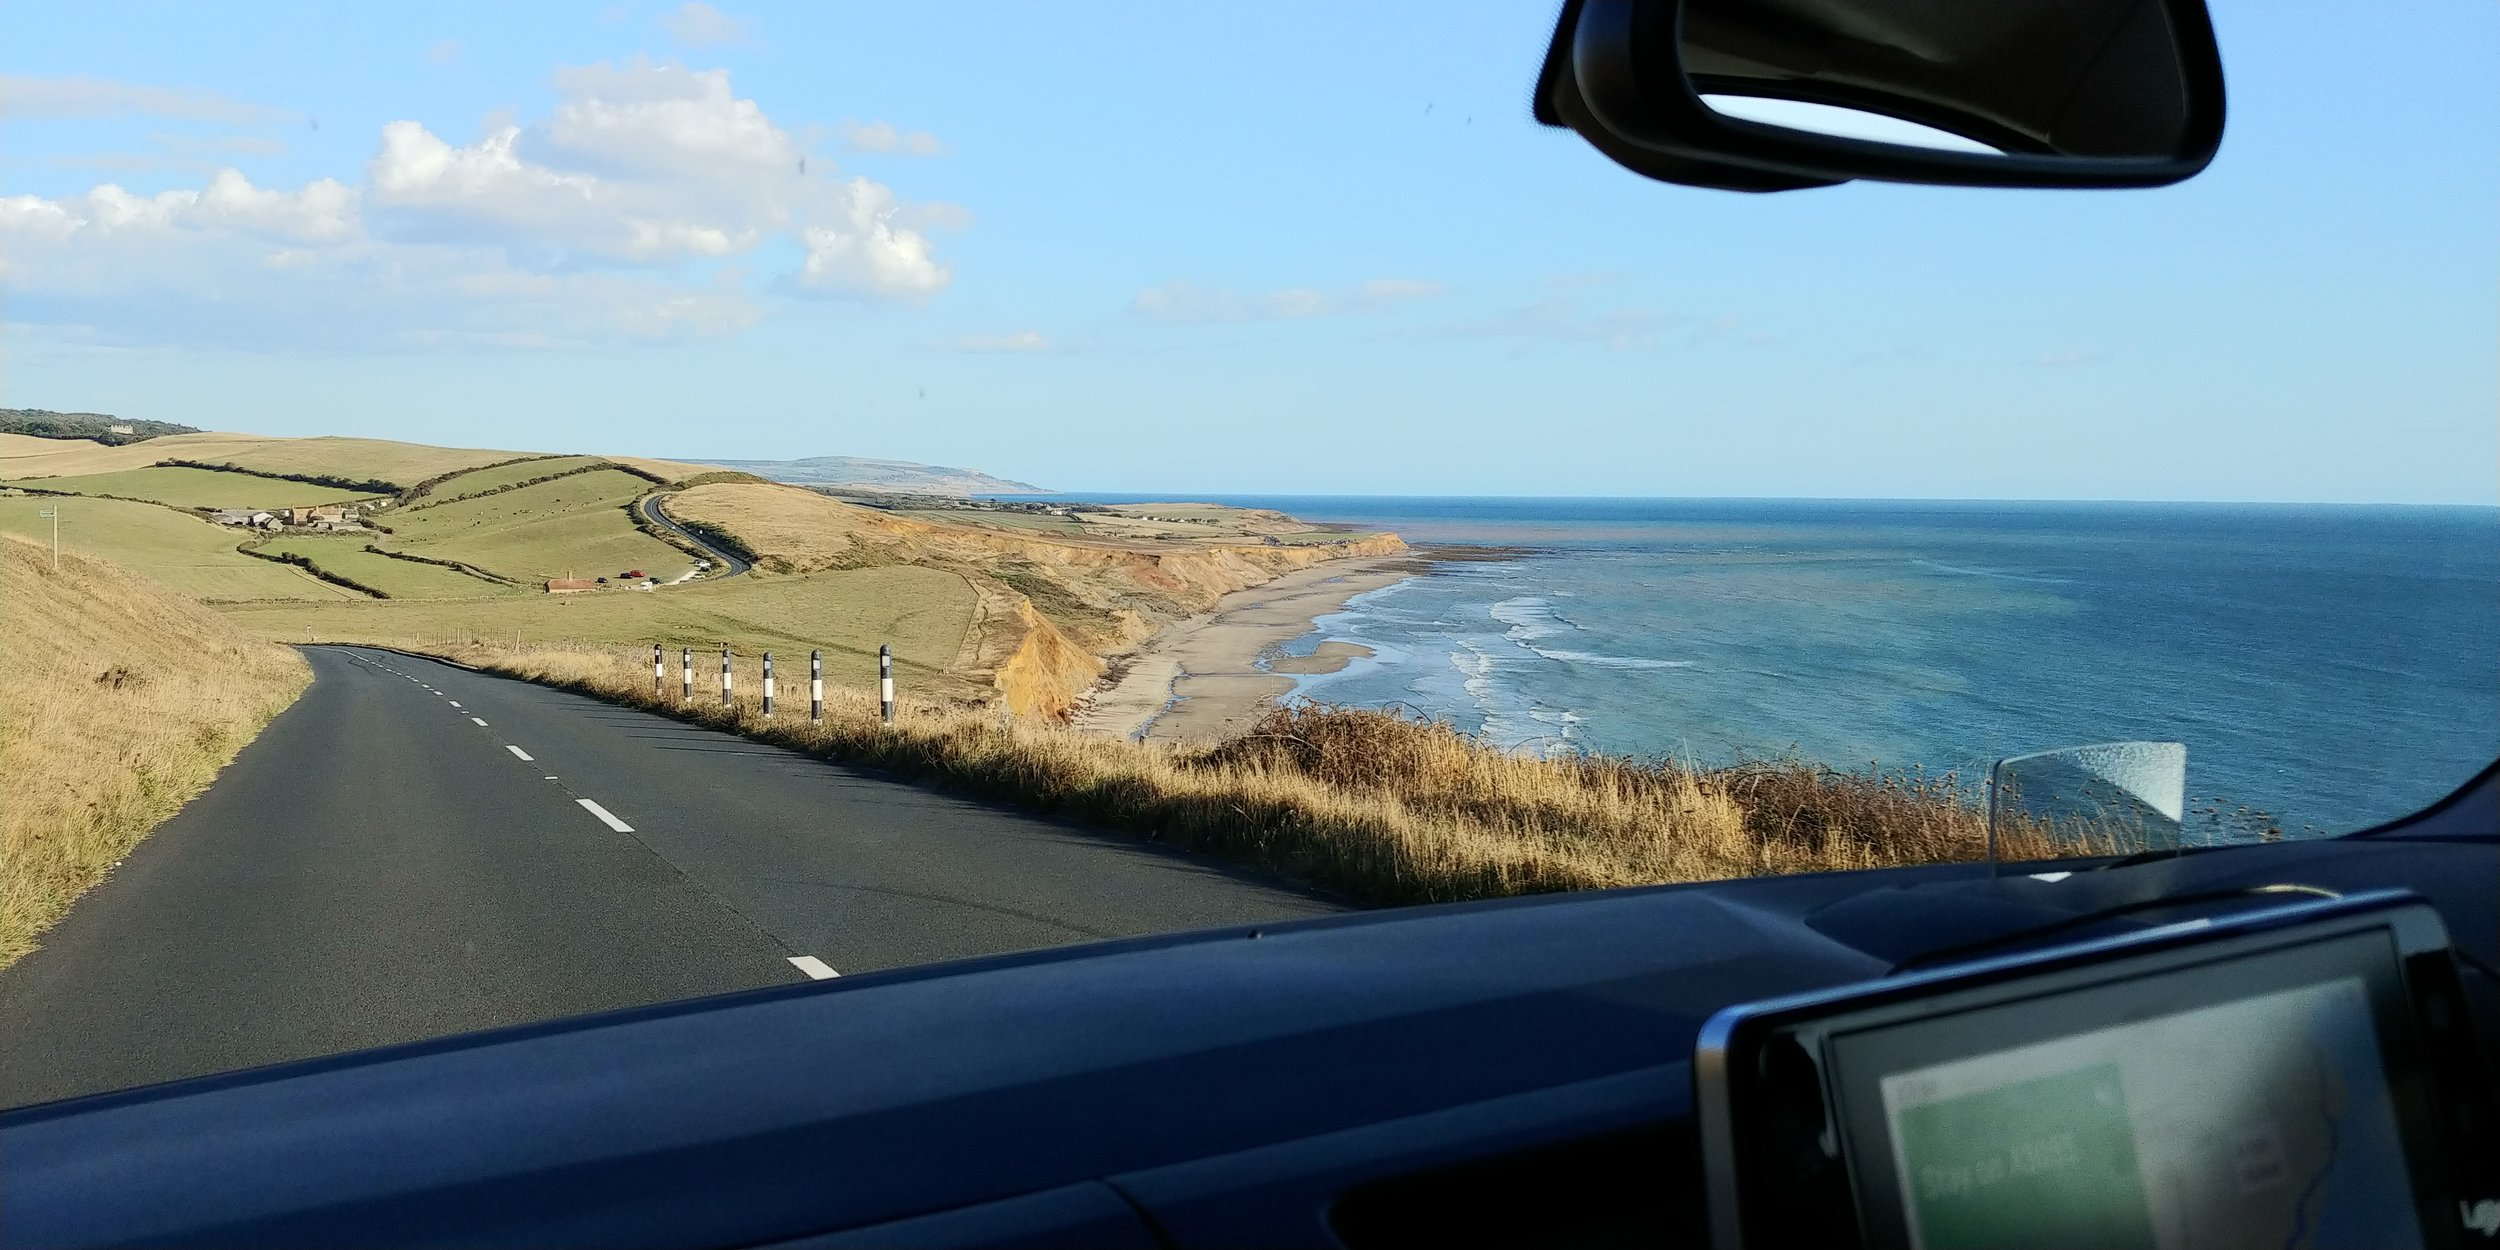 Road-tripping along the west Wight coast with the sat nav doing the heavy lifting.